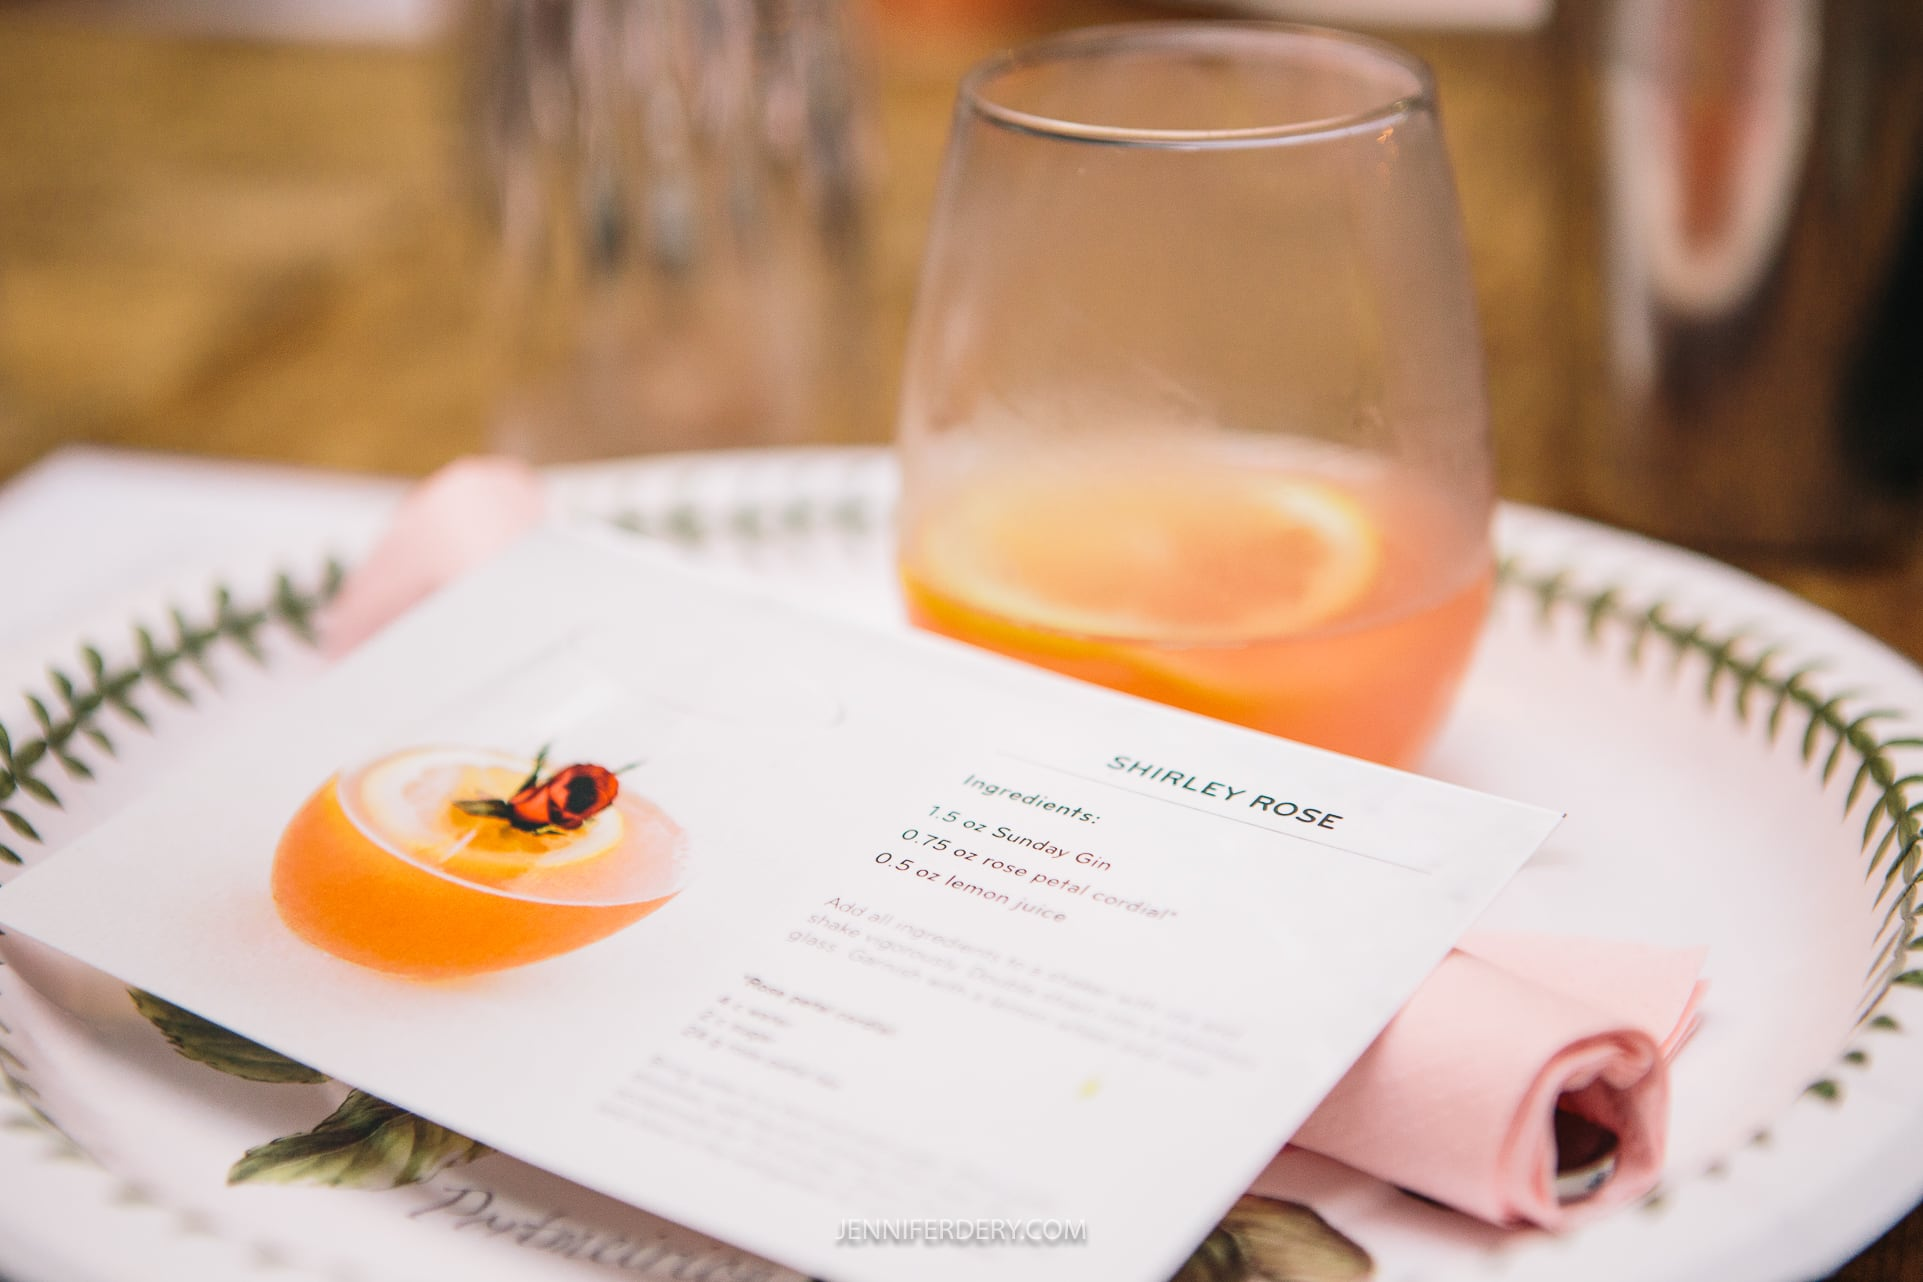 A Valentine Themed Cooking & Cocktail Class